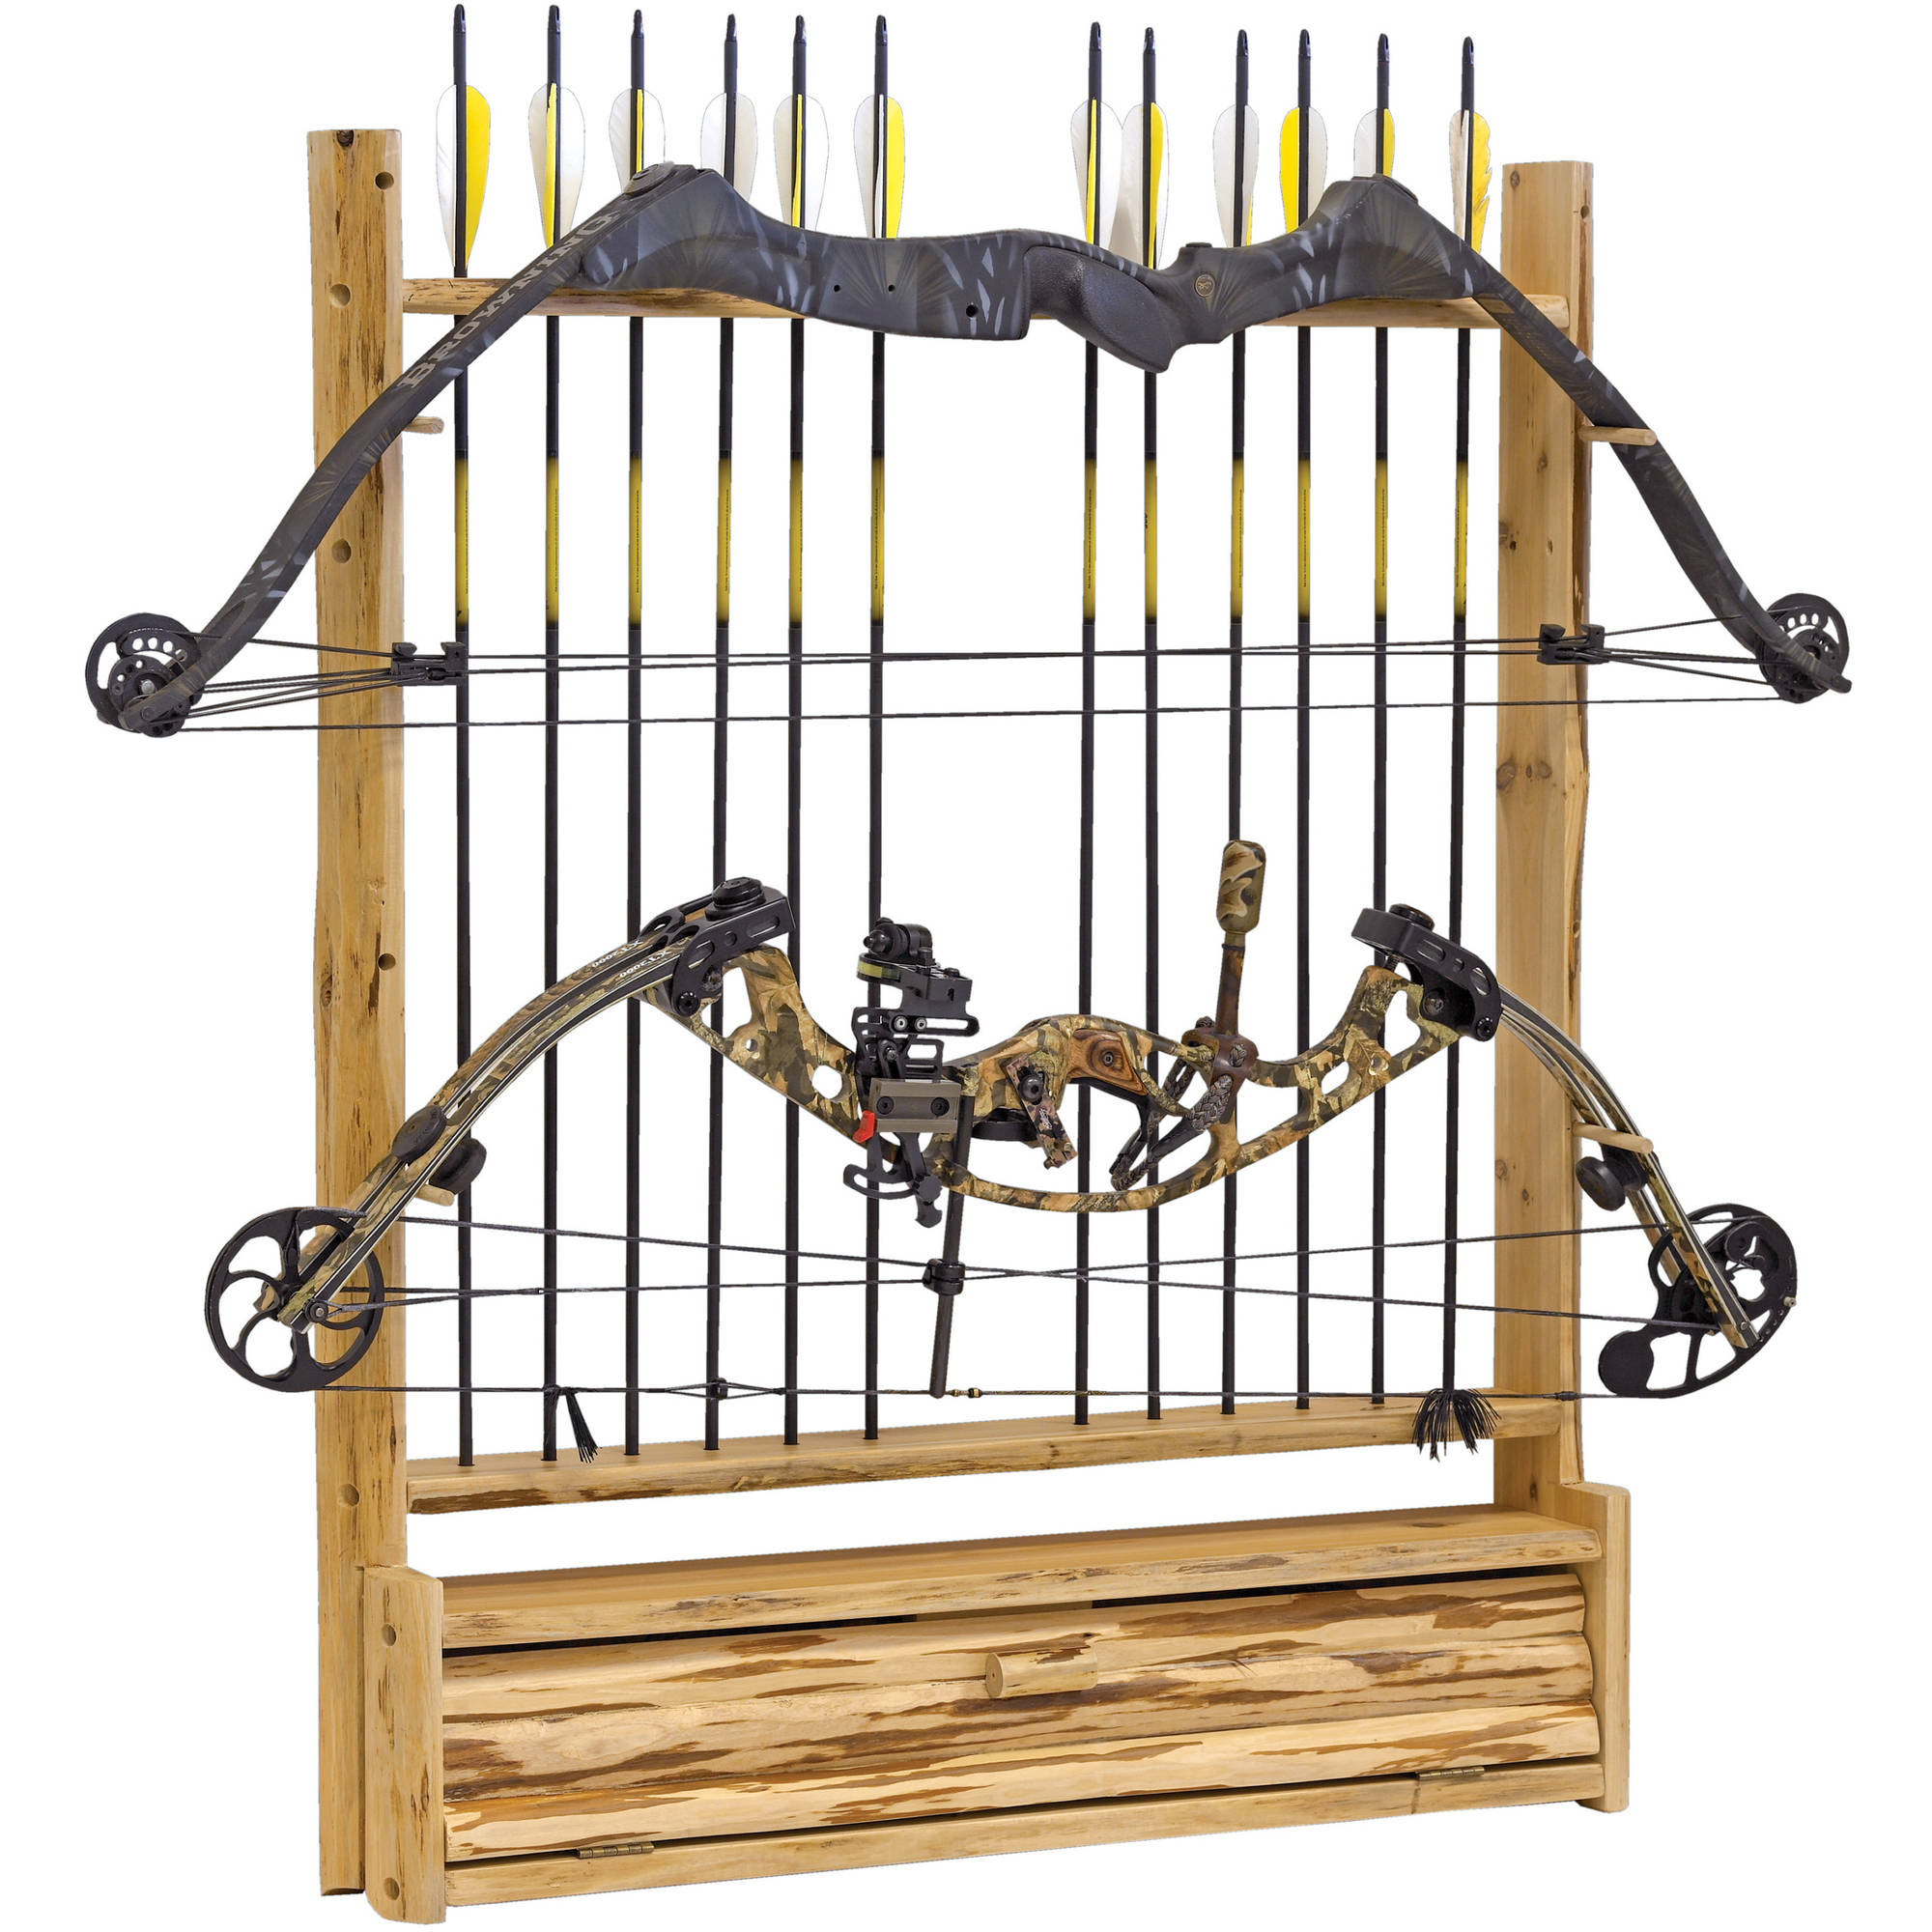 Rush Creek Creations 2 Bow 12 Arrrow Wall Storage Rack with Accessory Compartment